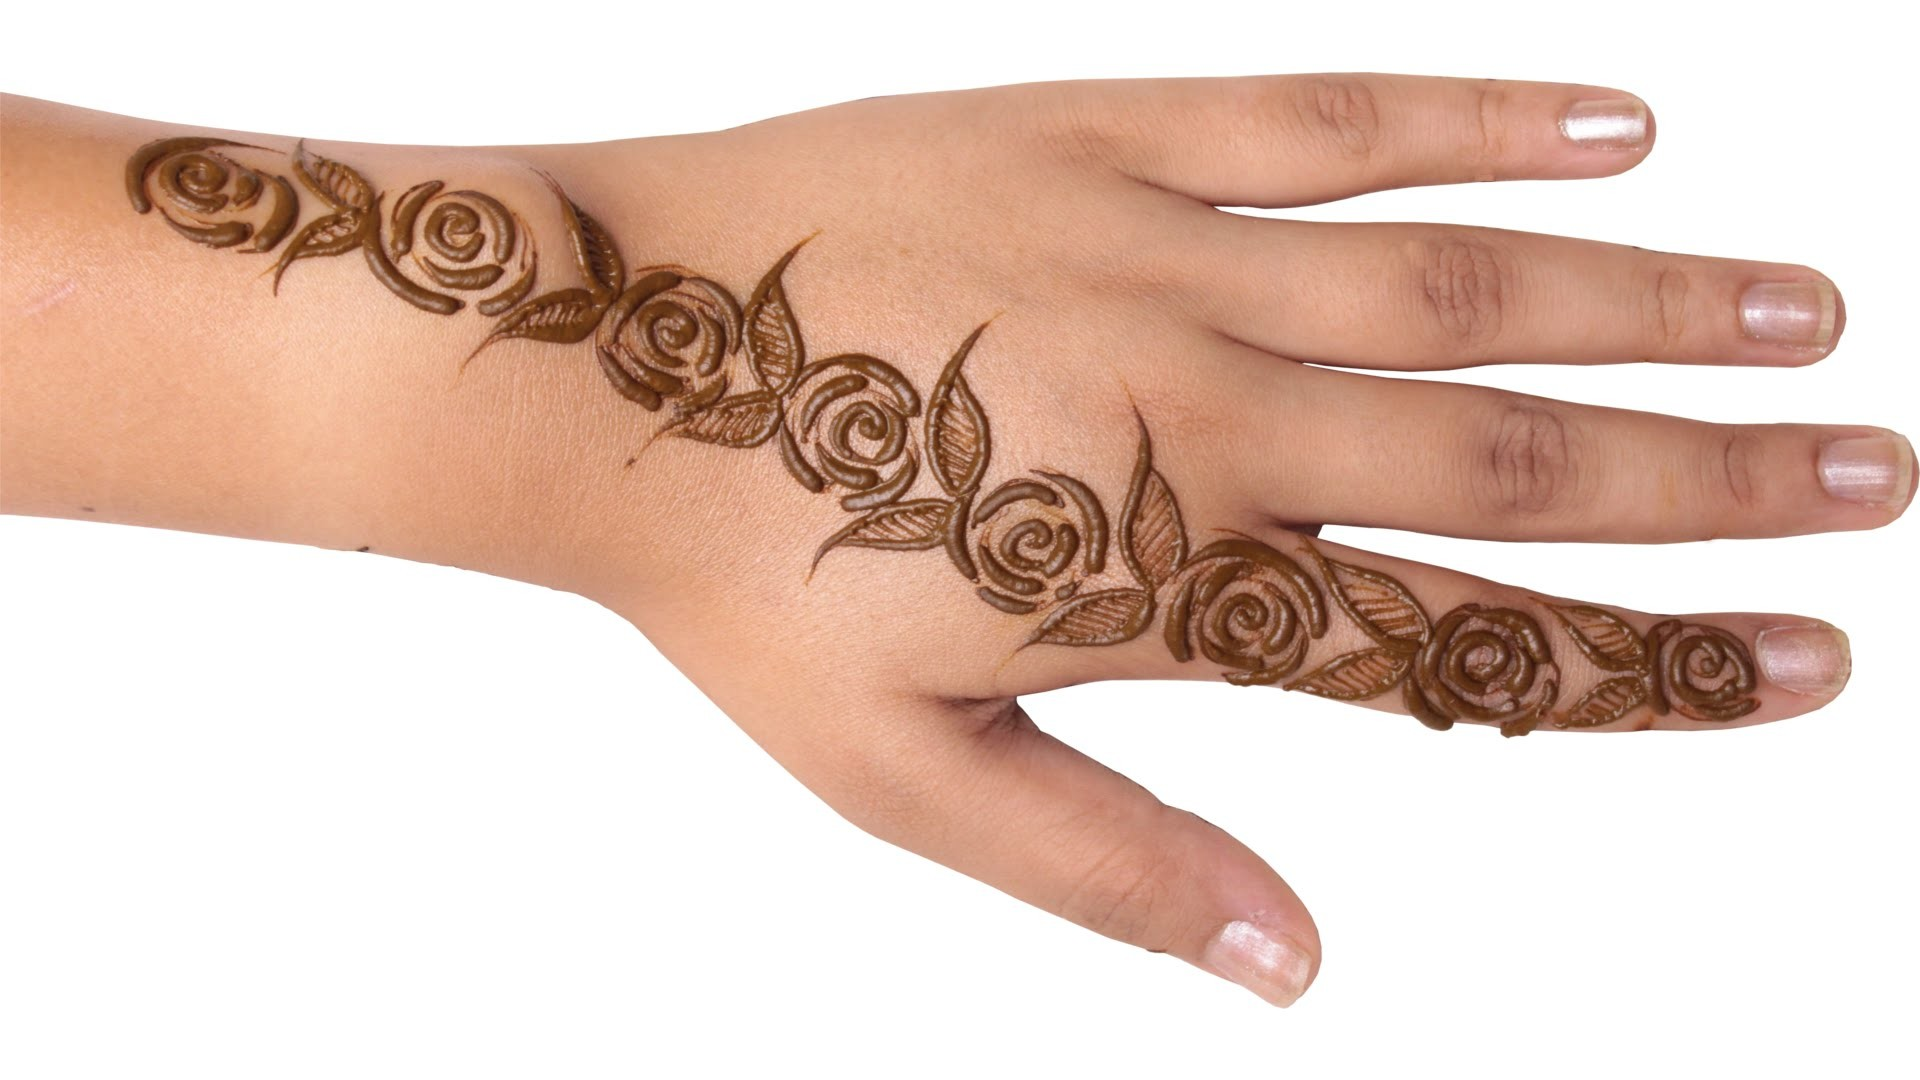 Mehndi Rose Designs For Hands : Rose mehndi design for hands my crafts and diy projects